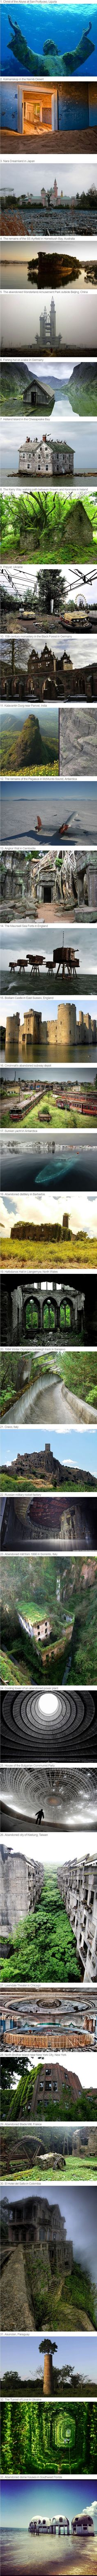 Most Beautiful Abandoned places on Earth. www.facebook.com/letsflee